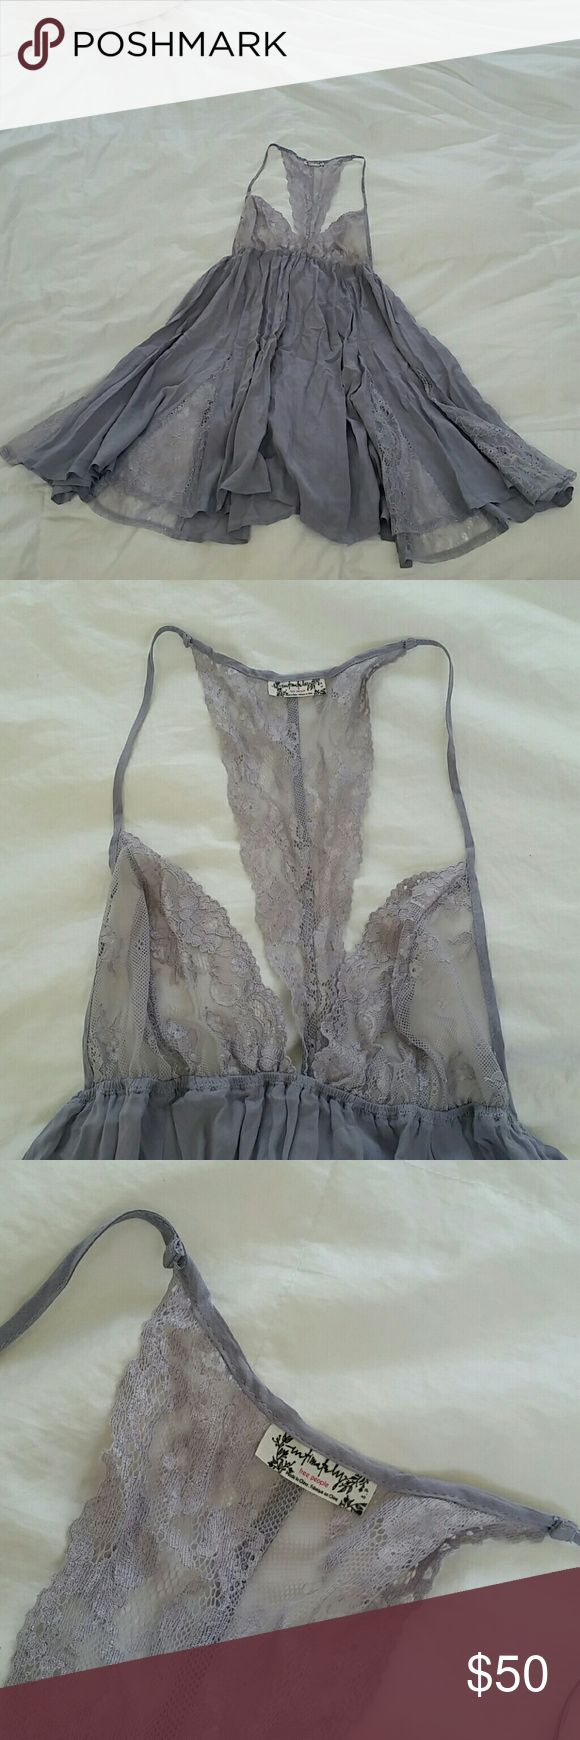 Intimately Free People Lavender Lace Nighty Size SMALL/PETITE. This beautiful light purple nighty is very breezy and lacy. It is in pristine condition, NWOT. Tags were taken off in excitement when first given to me, but the nighty never fit me very well so I never got to wear it. Absolutely no marks or issues. Free People Intimates & Sleepwear